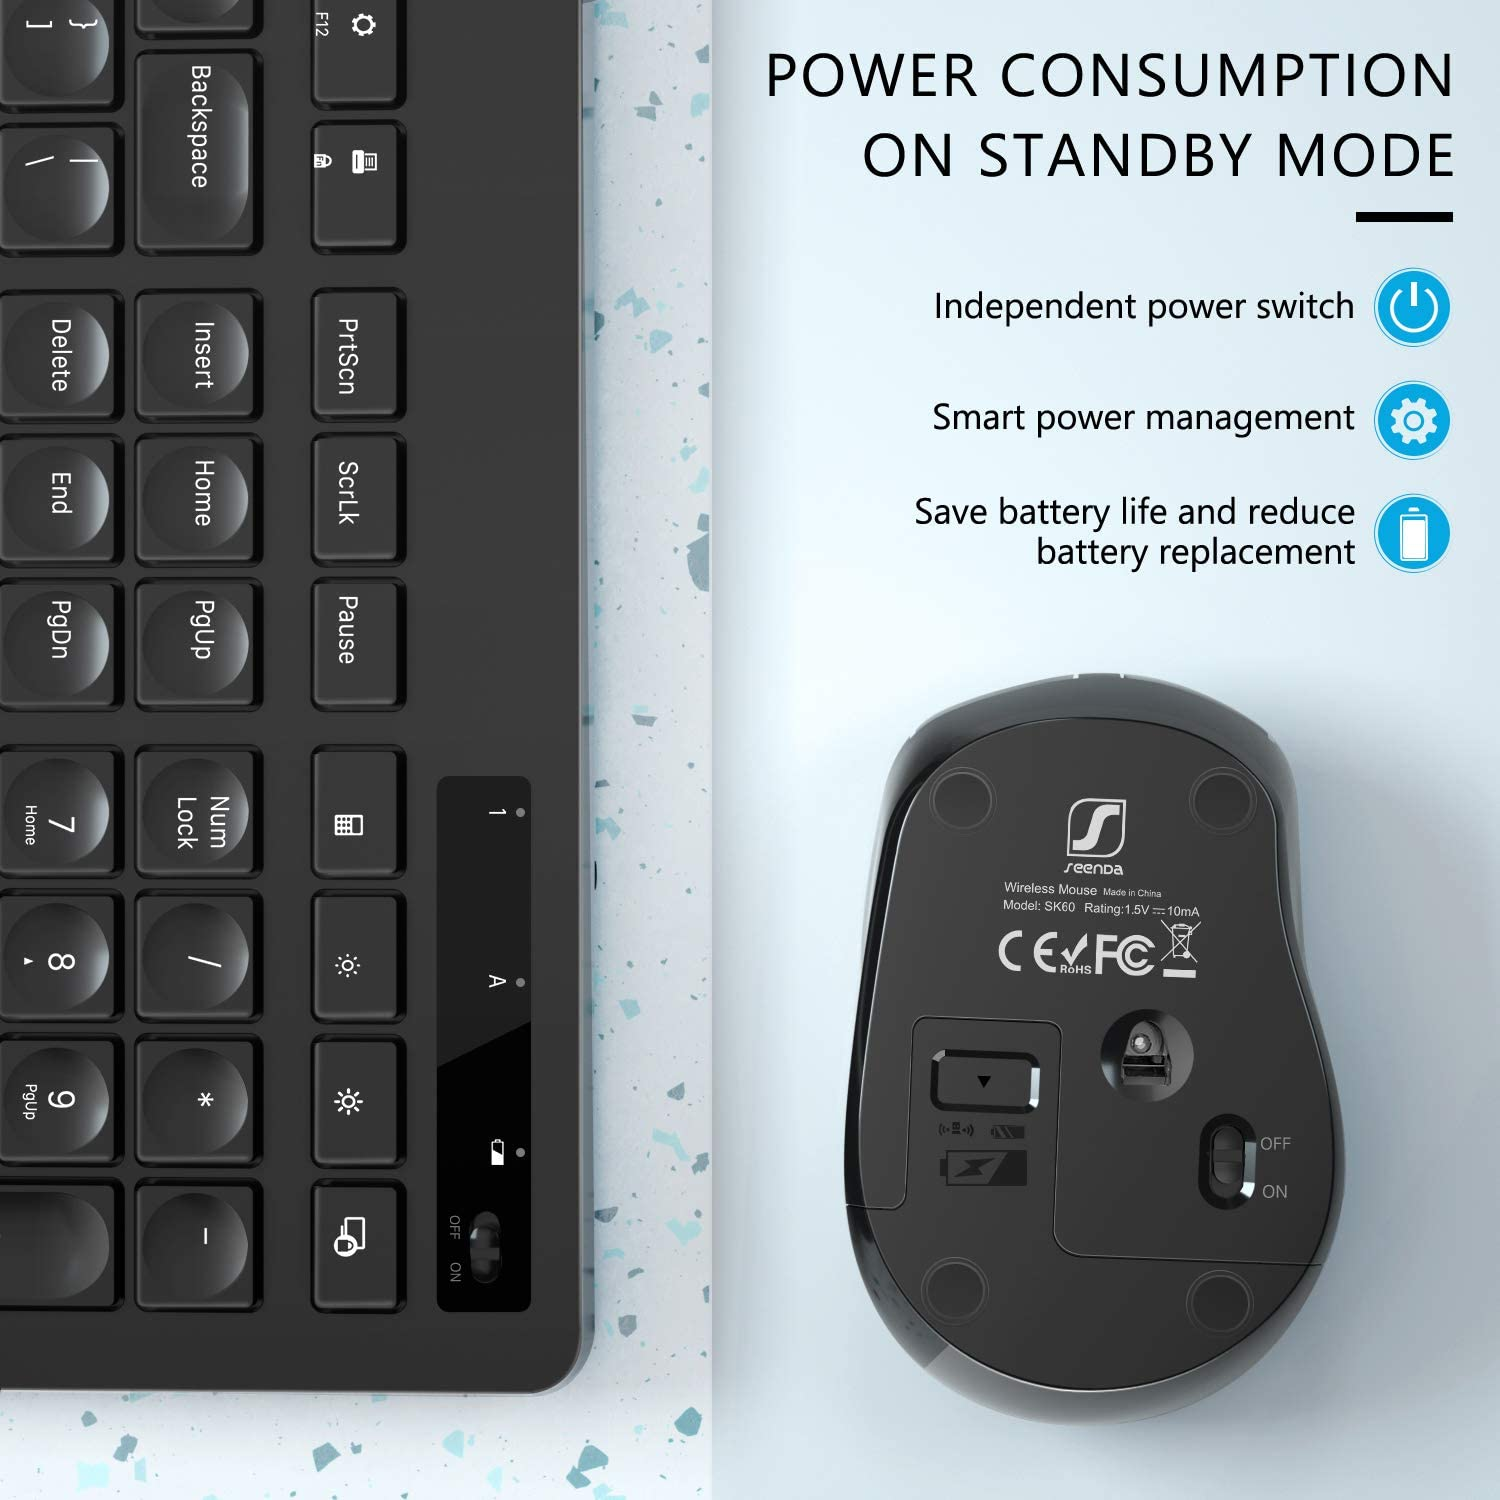 Full-Size Keyboard and Mouse for Computer Keyboard with Phone Holder seenda 2.4GHz Silent USB Wireless Keyboard Mouse Combo Wireless Keyboard and Mouse Desktop and Laptop Black